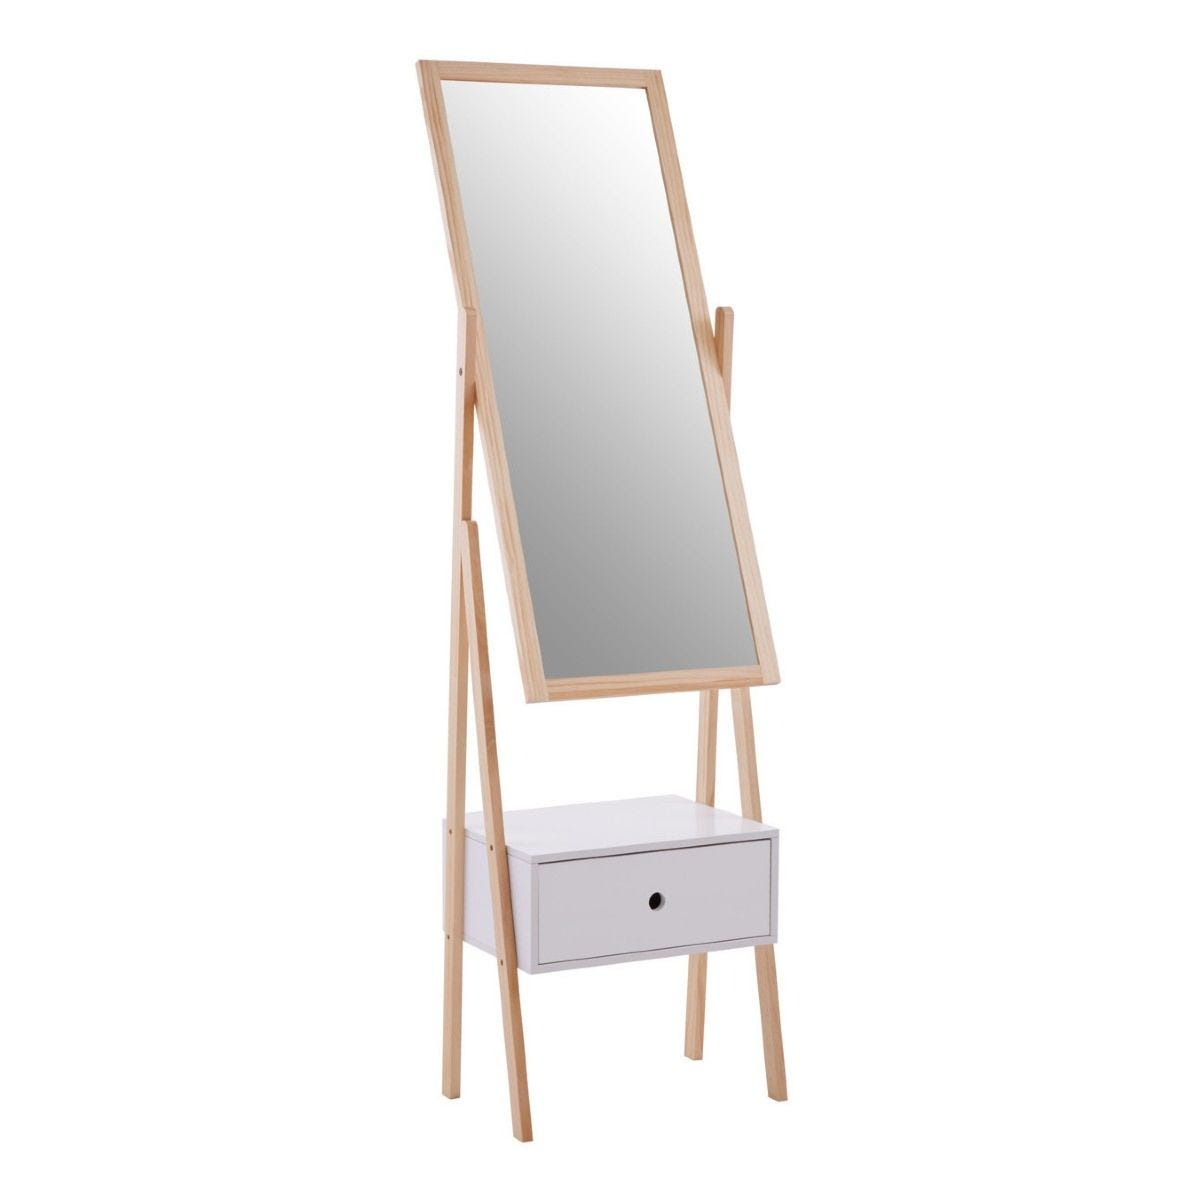 Premier Housewares Mirror Stand with Drawer White Pine Wood Frame